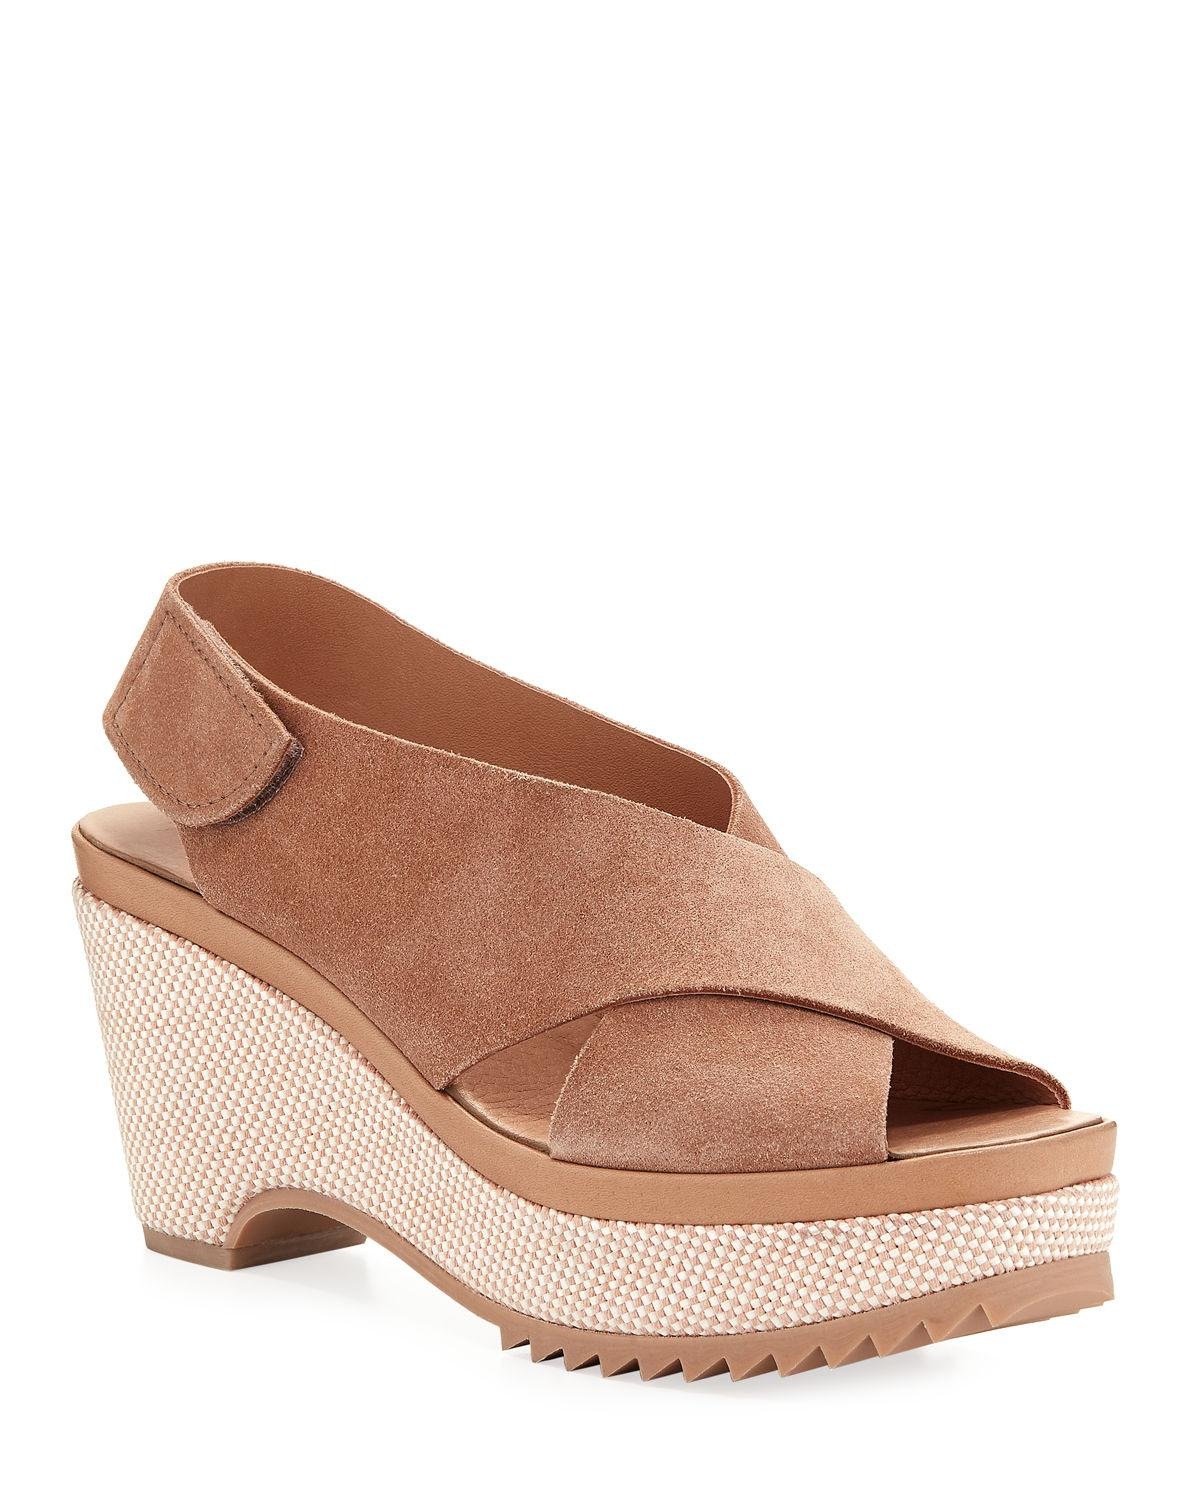 9ff8f4ae5ee Lyst - Pedro Garcia Fatema Suede Wedge Sandals in Brown